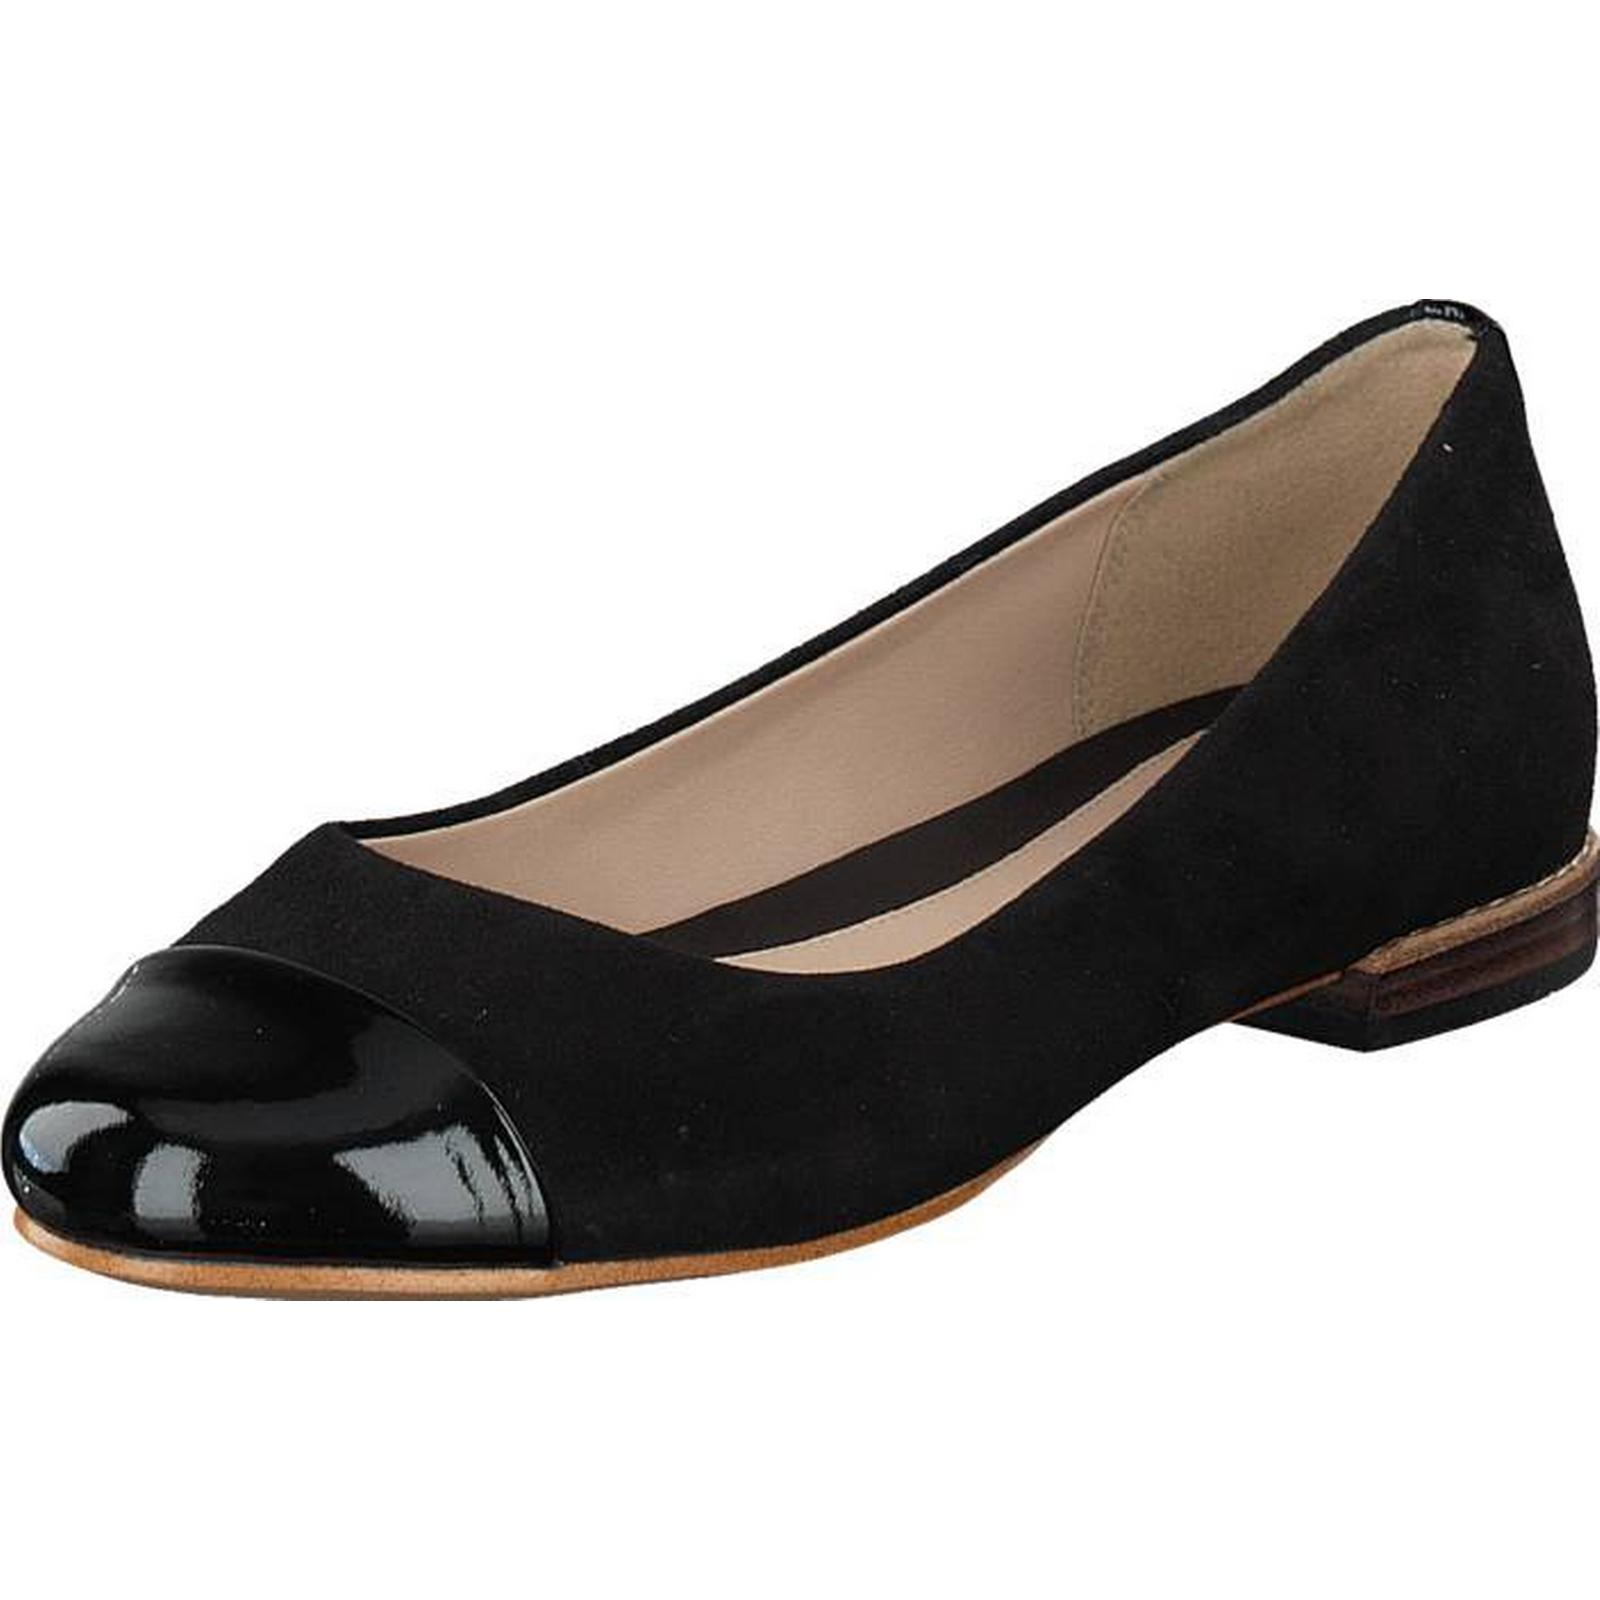 Clarks Festival Gold Black Black Gold Combi, Shoes, Flats, Ballerina Shoes, Black, Female, 36 d842e3